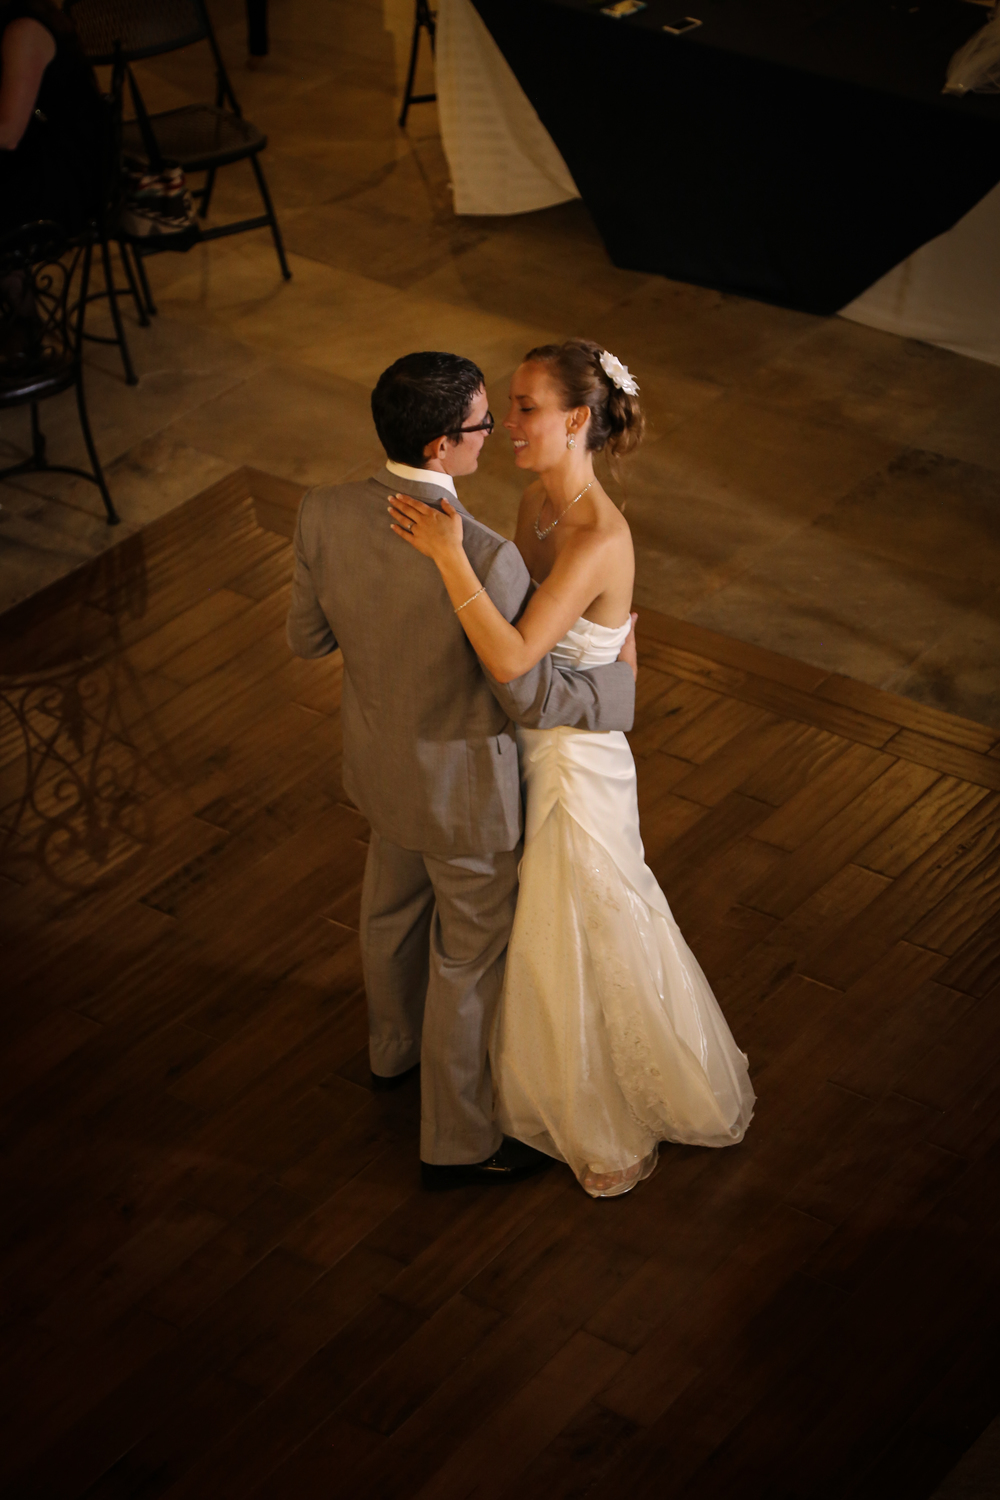 Bountiful wedding photographer, Kelly Loveless